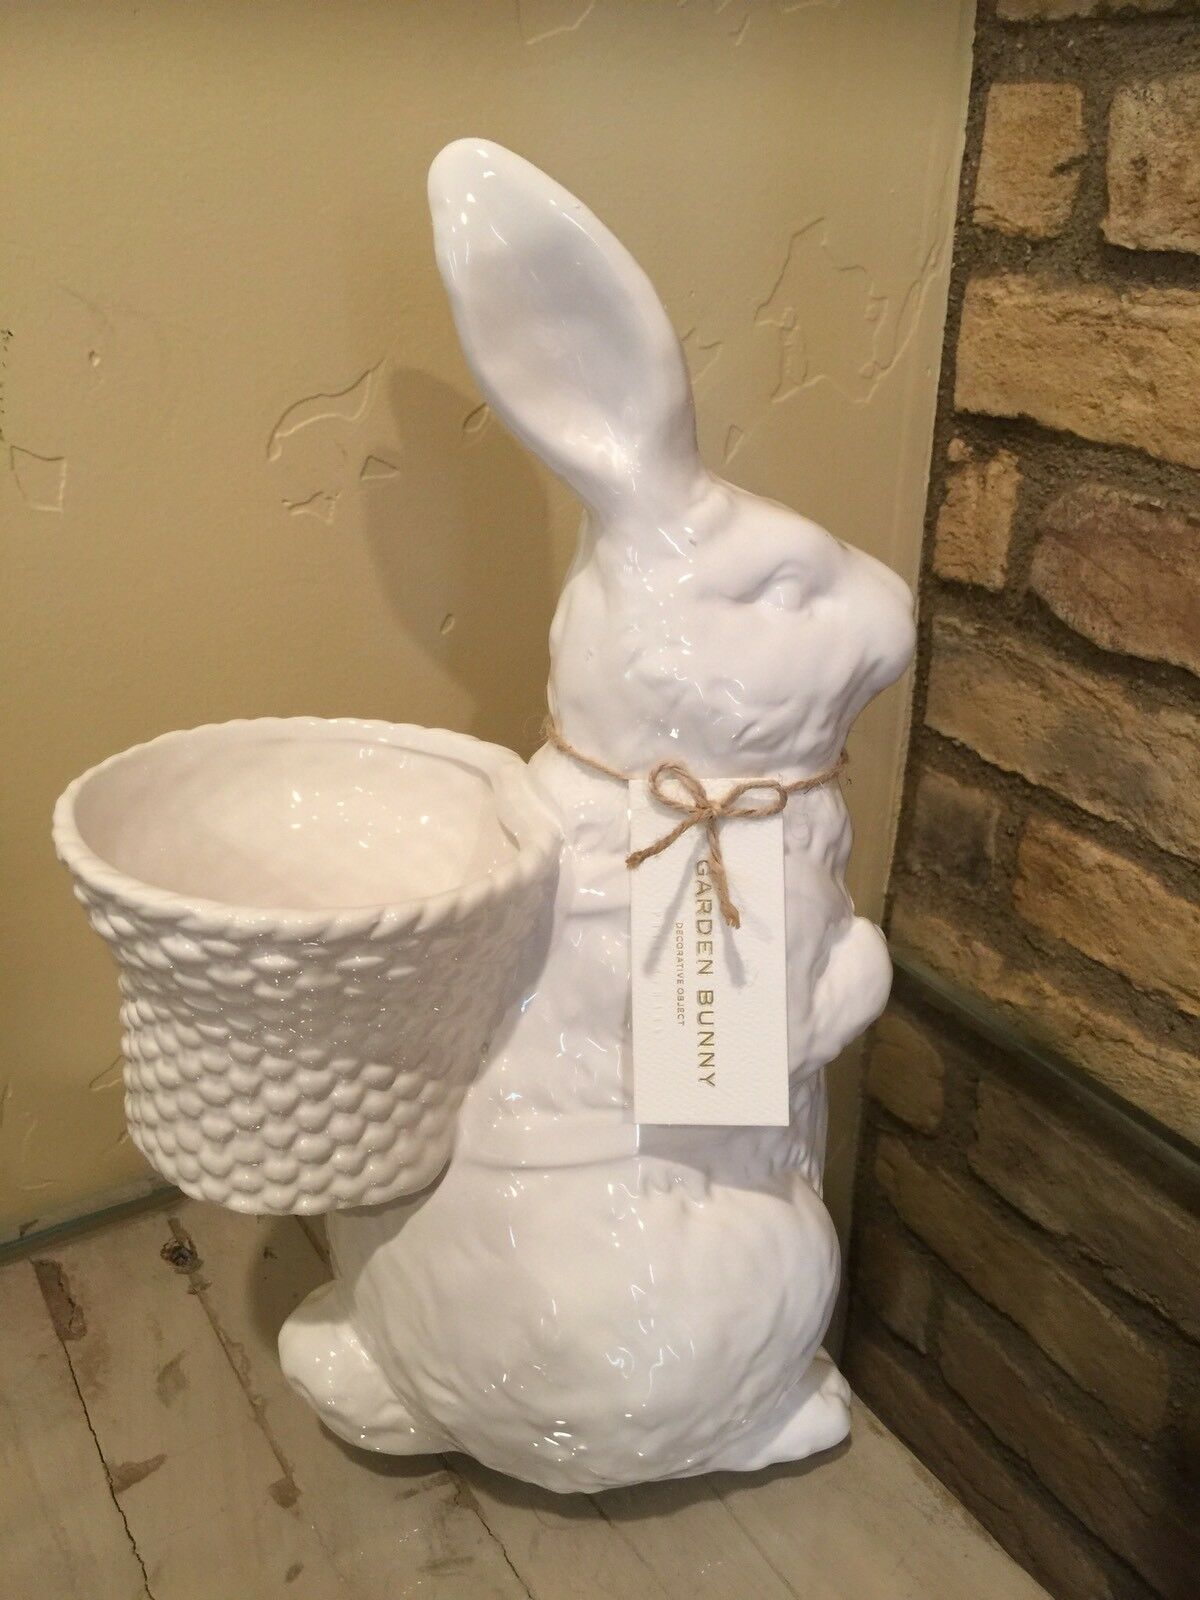 New Pottery Barn Garden Bunny Ceramic Large Medium And Small Small Small Easter Bunny 9a295a